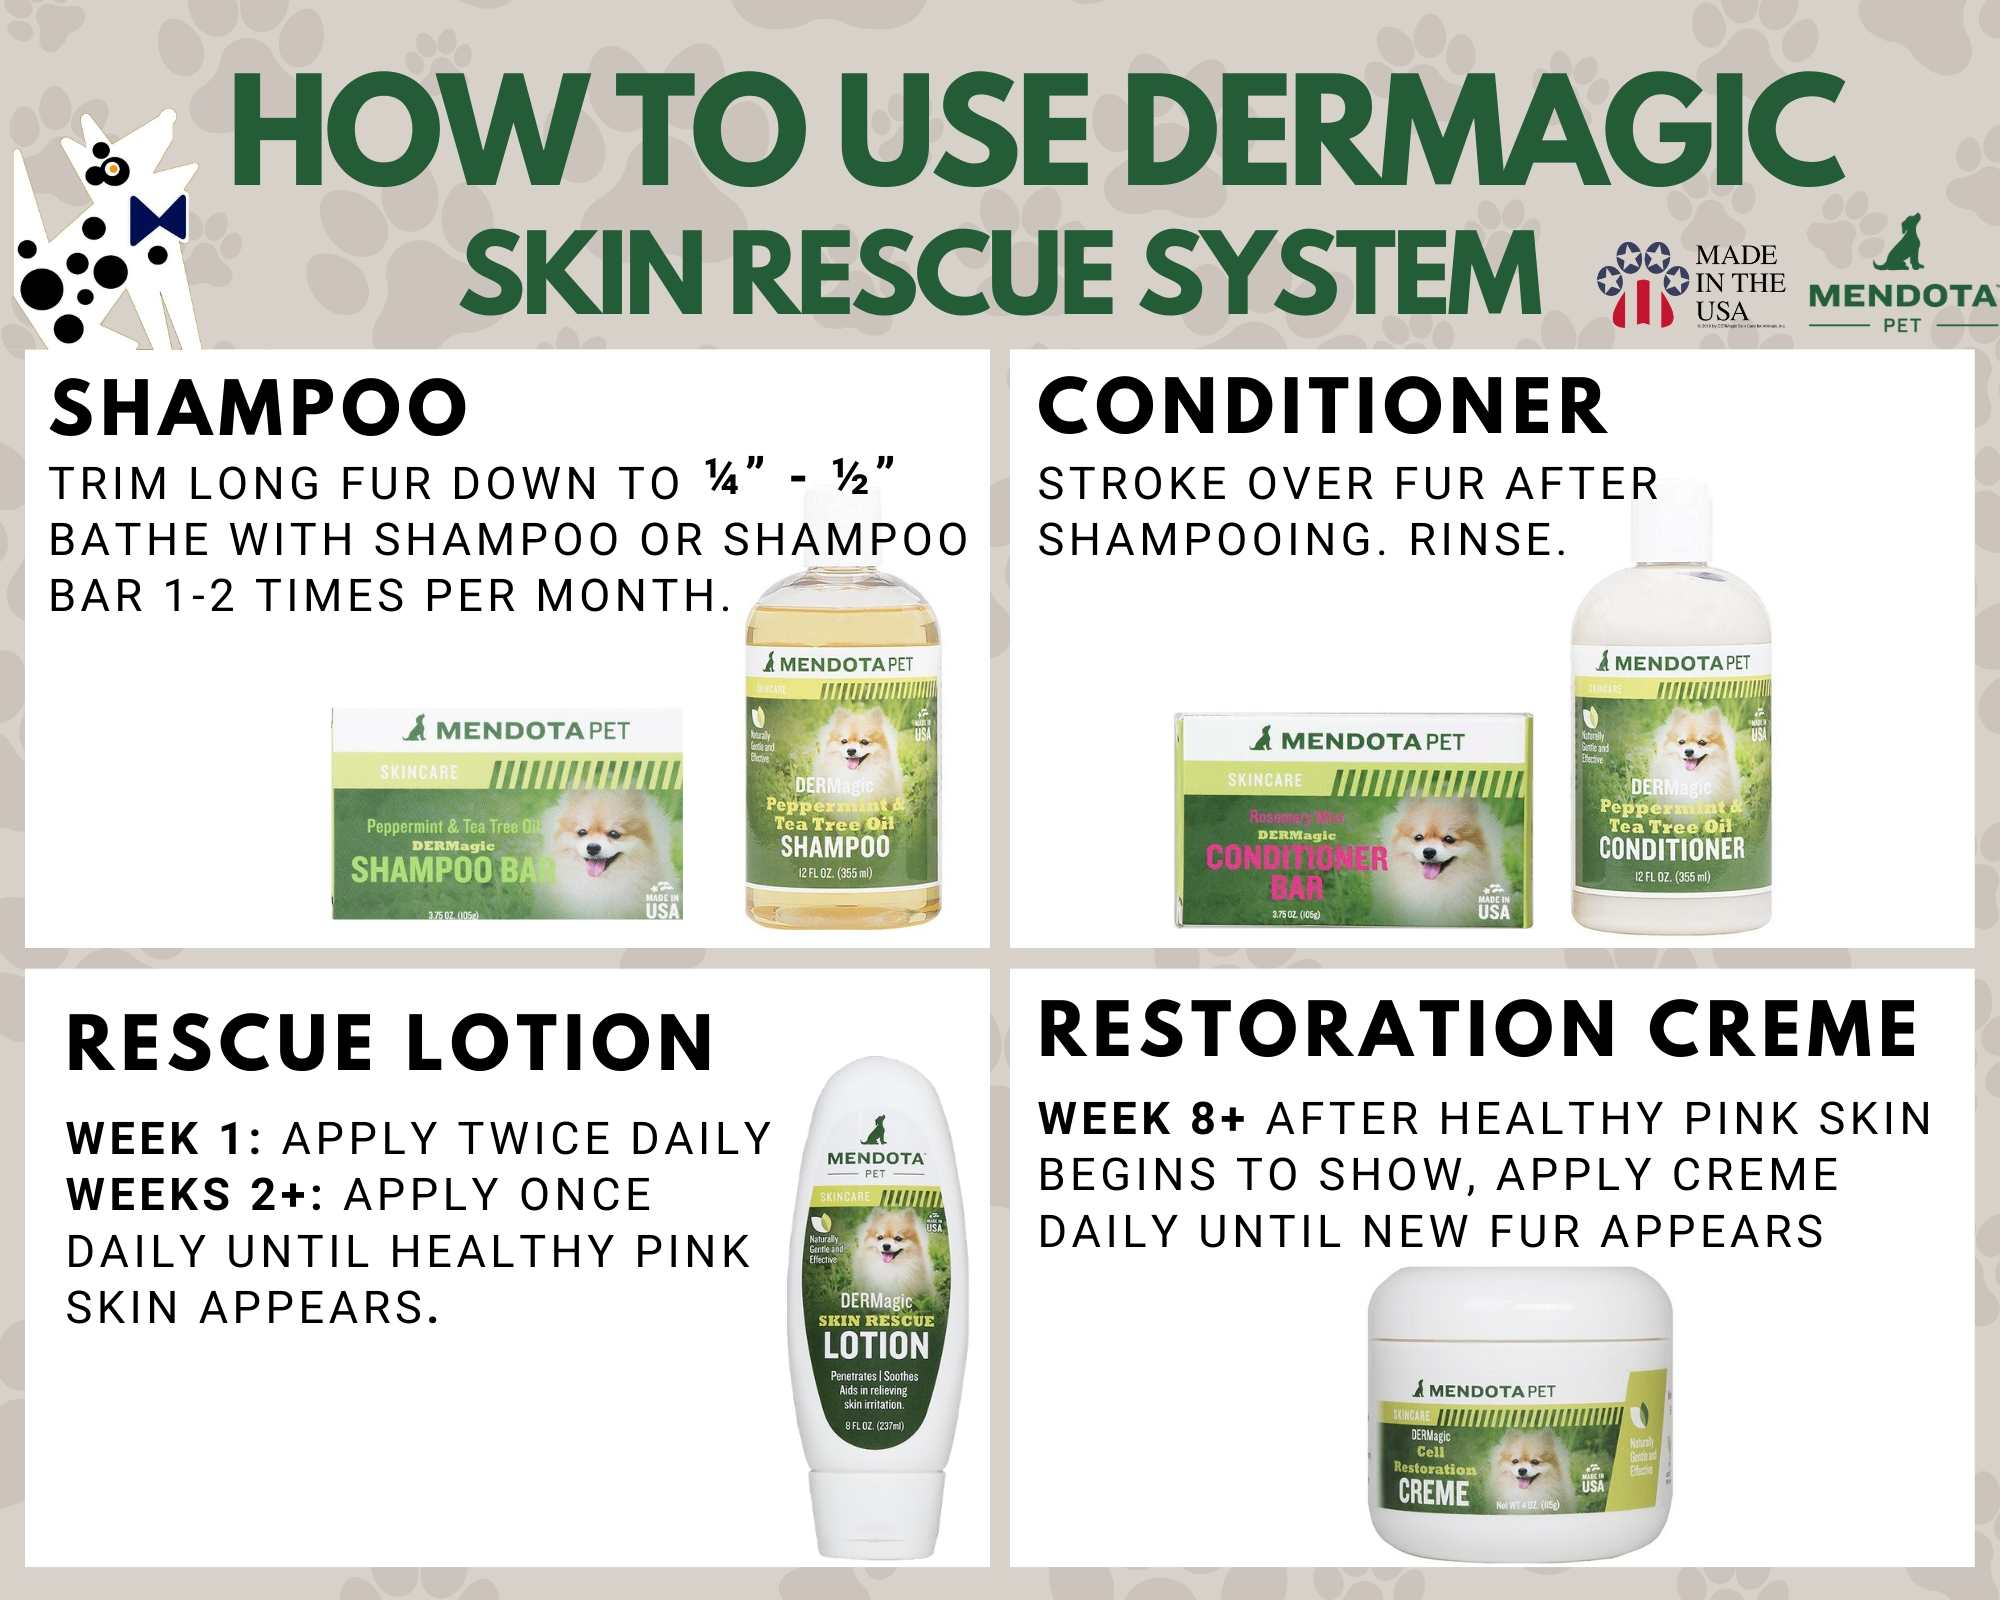 Directions for DERMagic Skin Care System